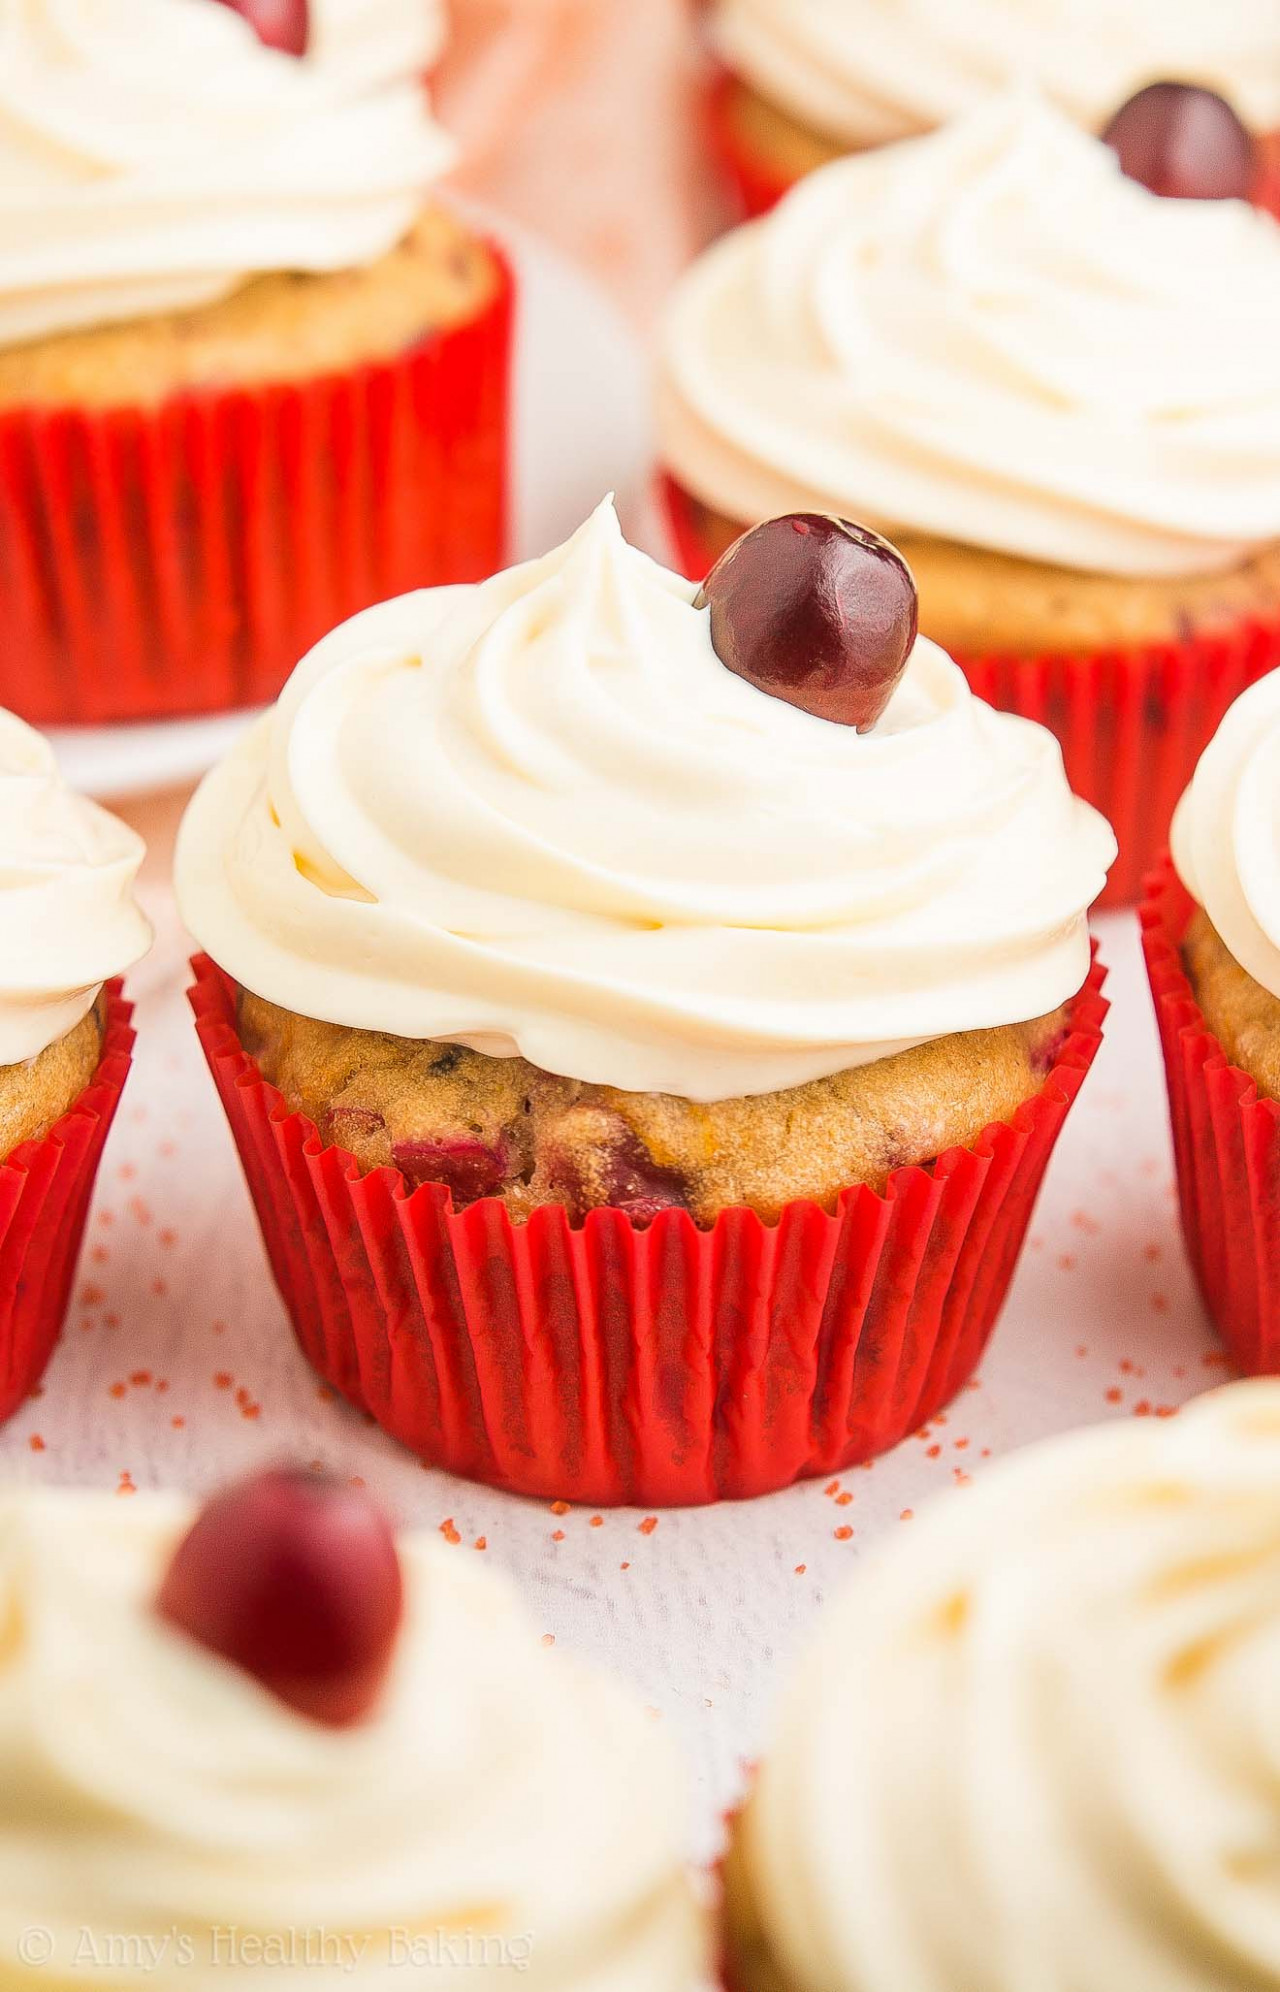 Healthy Cranberry Orange Cupcakes with Cream Cheese Frosting